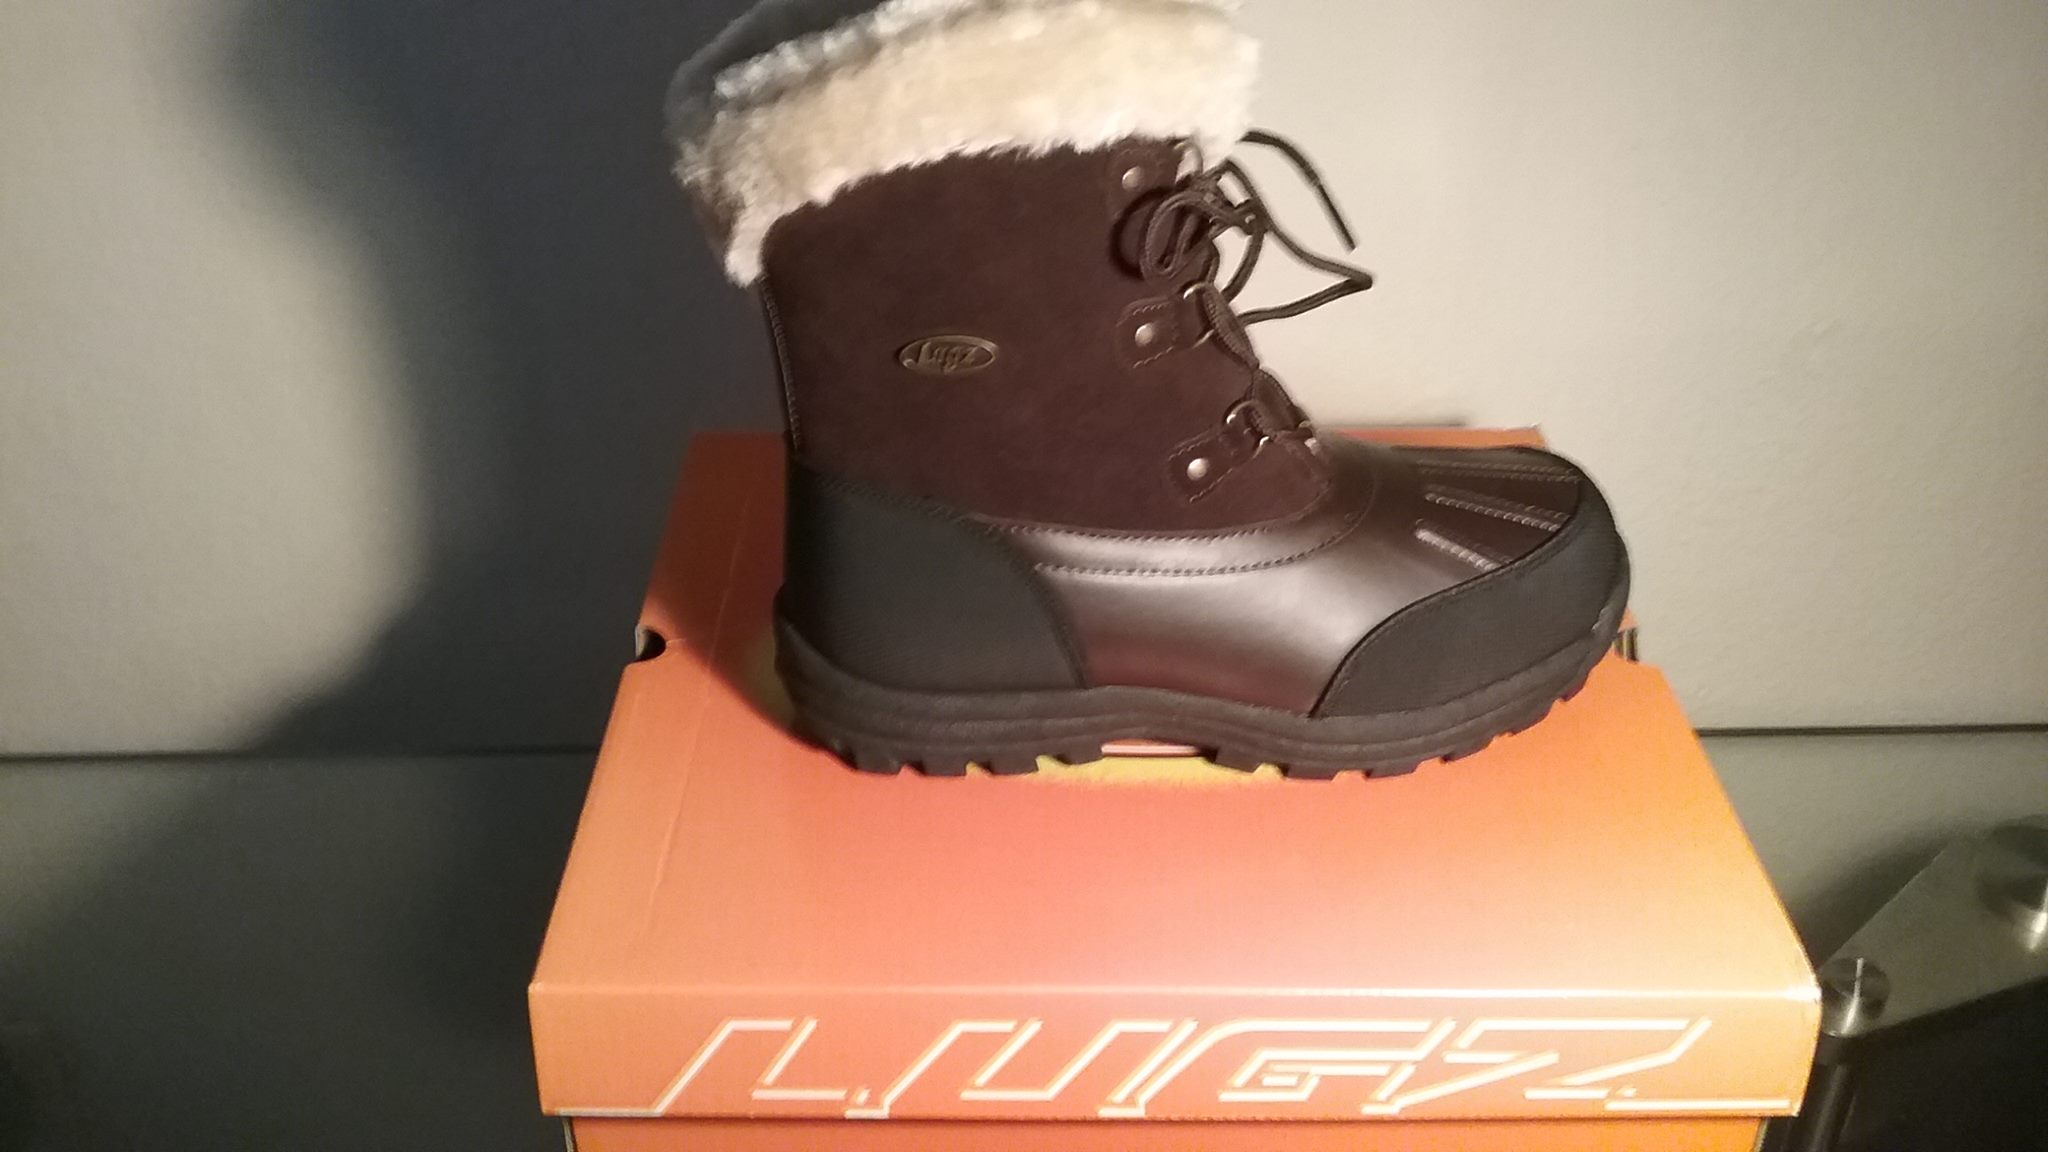 Lugz Women's Tallulah Boots, keeping your feet cozy and warm this winter!